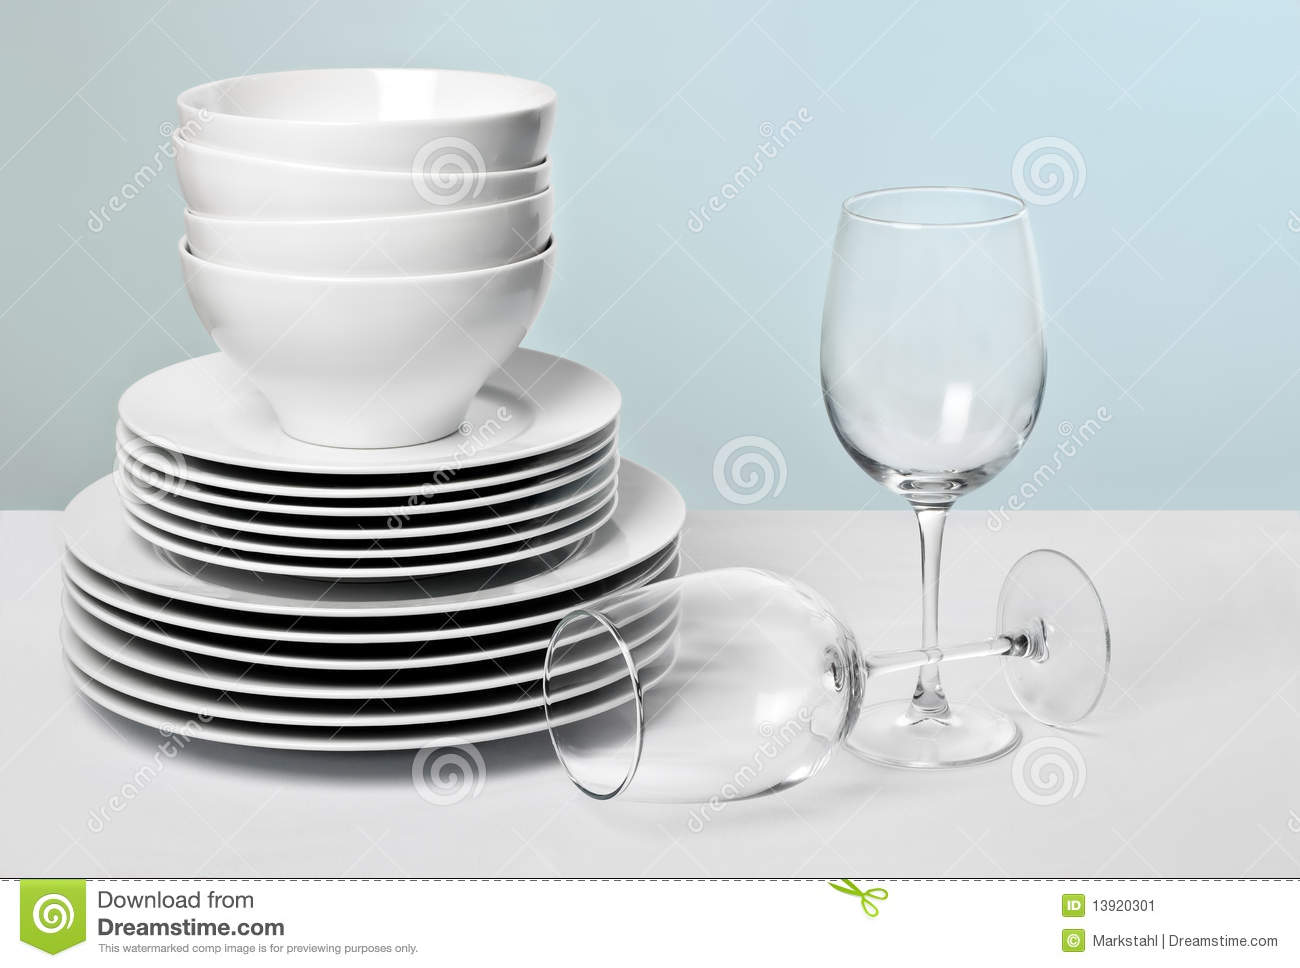 Commercial White Dishes and Crystal Wine Glasses